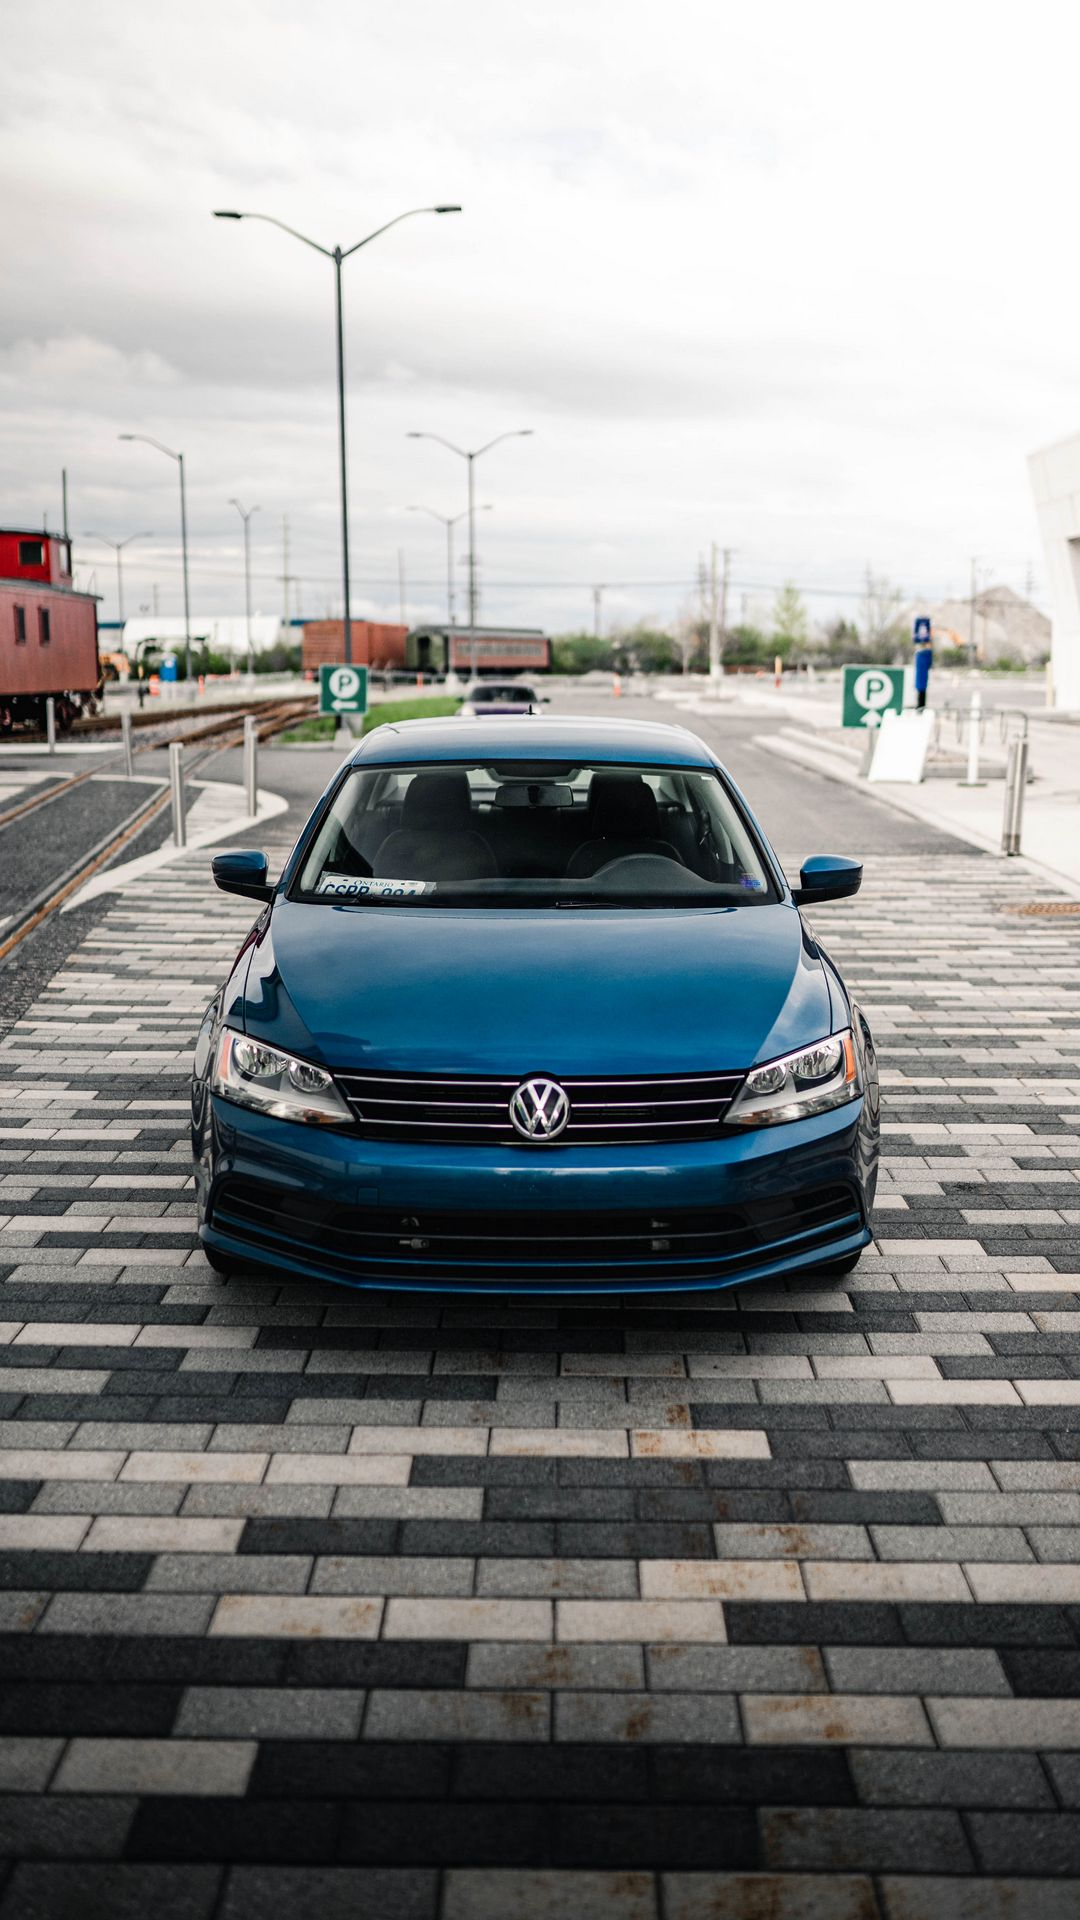 Volkswagen Polo Wallpapers Free Download